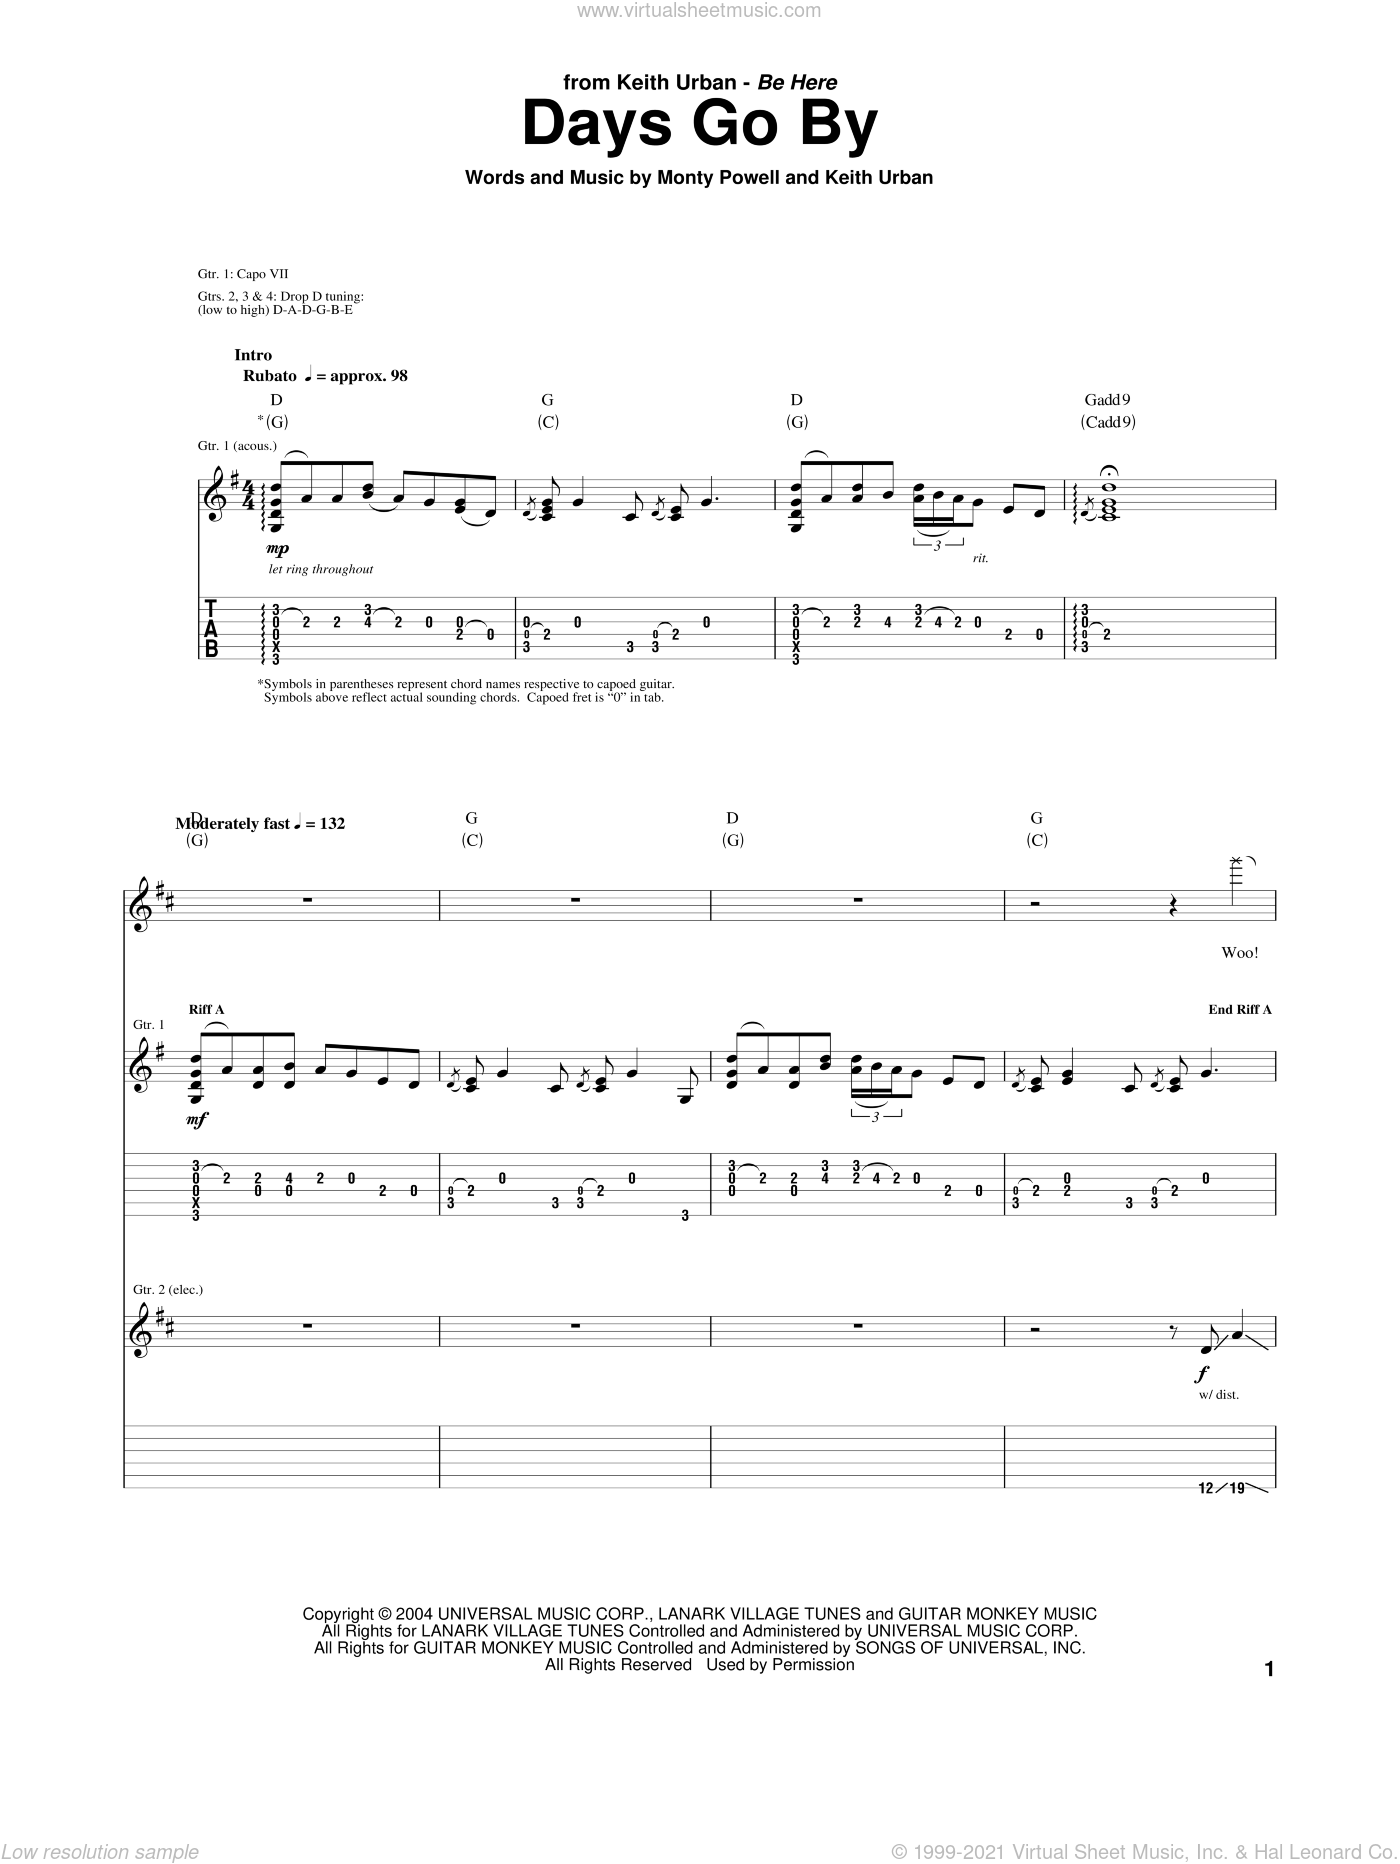 Days Go By sheet music for guitar (tablature) by Monty Powell and Keith Urban. Score Image Preview.